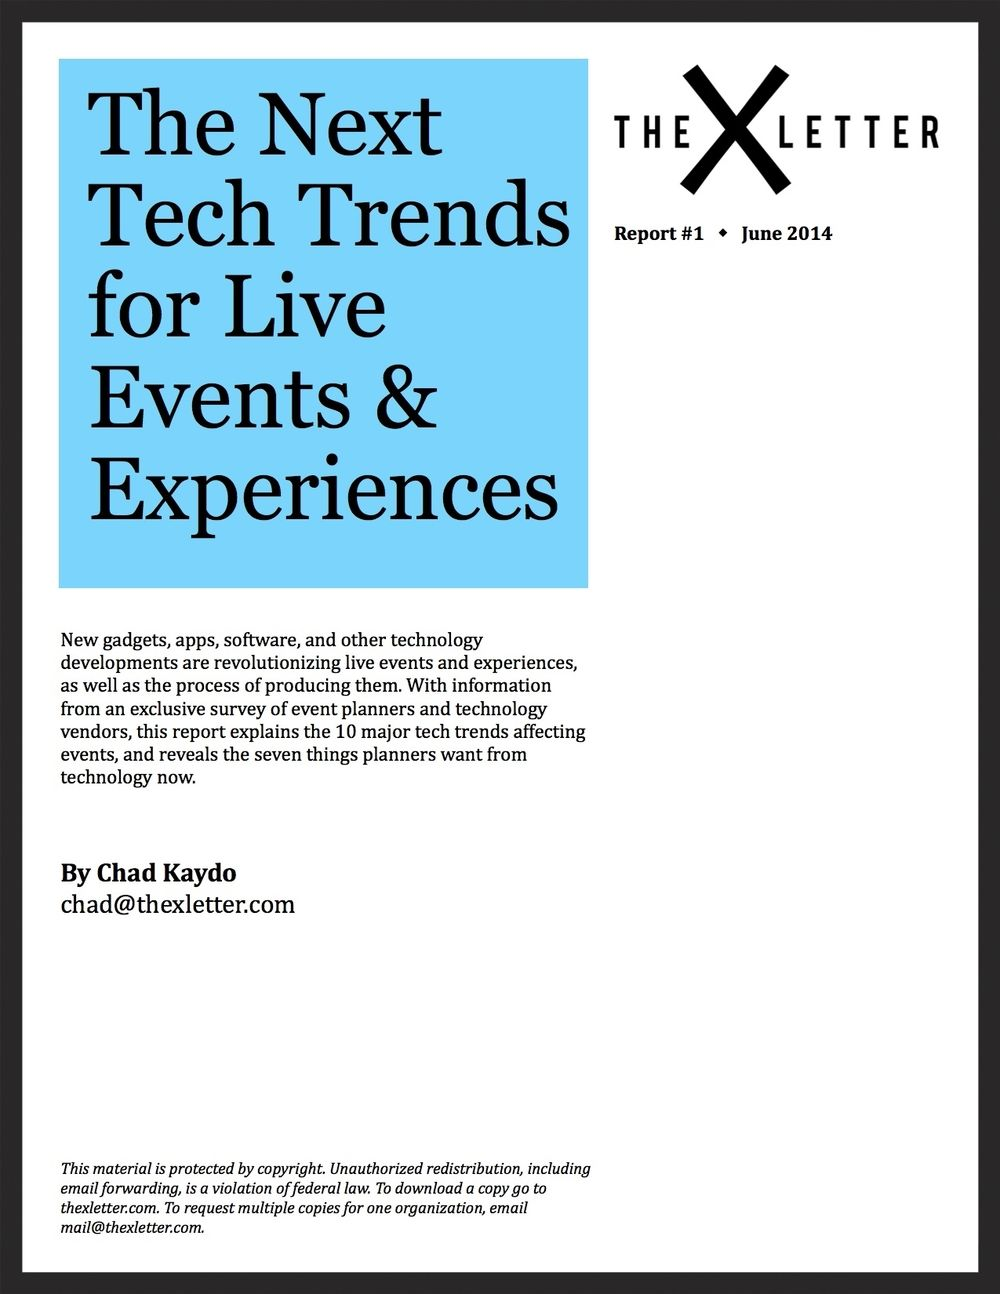 7 Things Event Planners Want From Technology Event tech